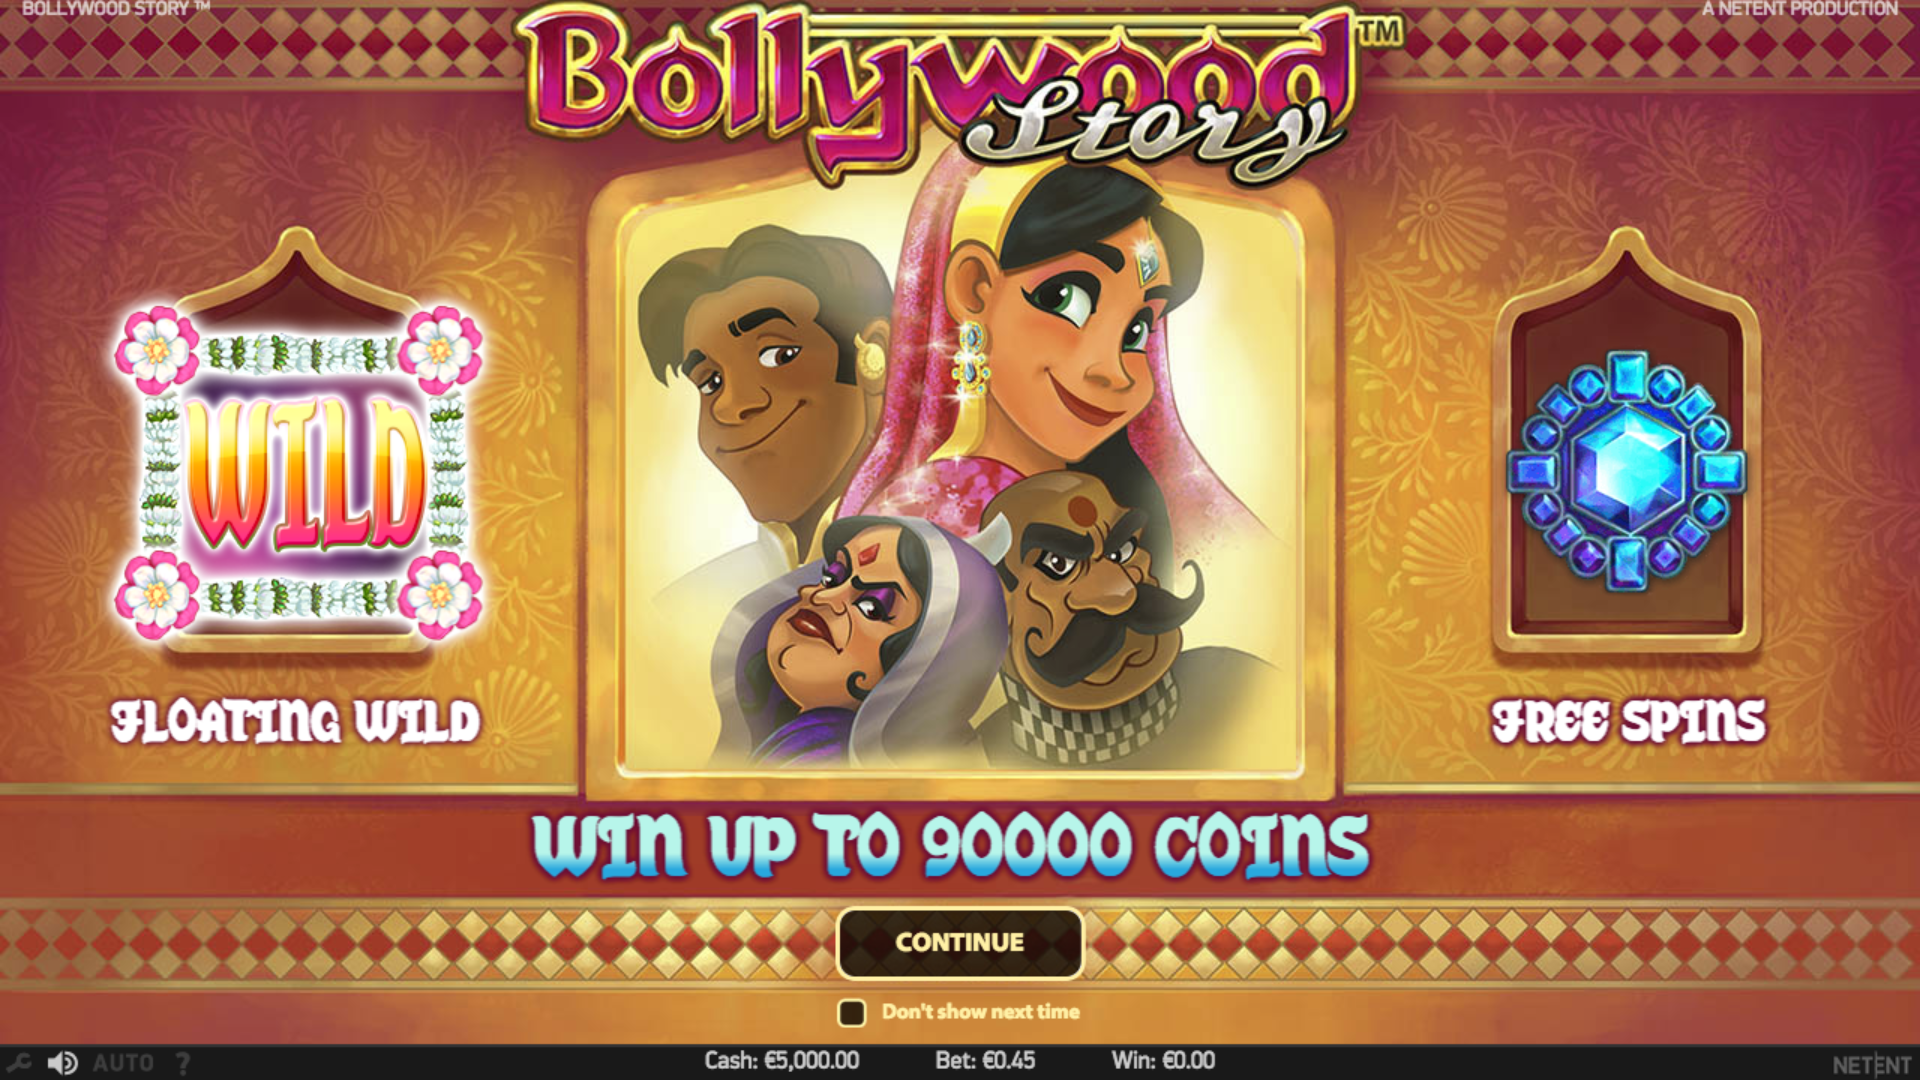 Bollywood Story by NetEnt